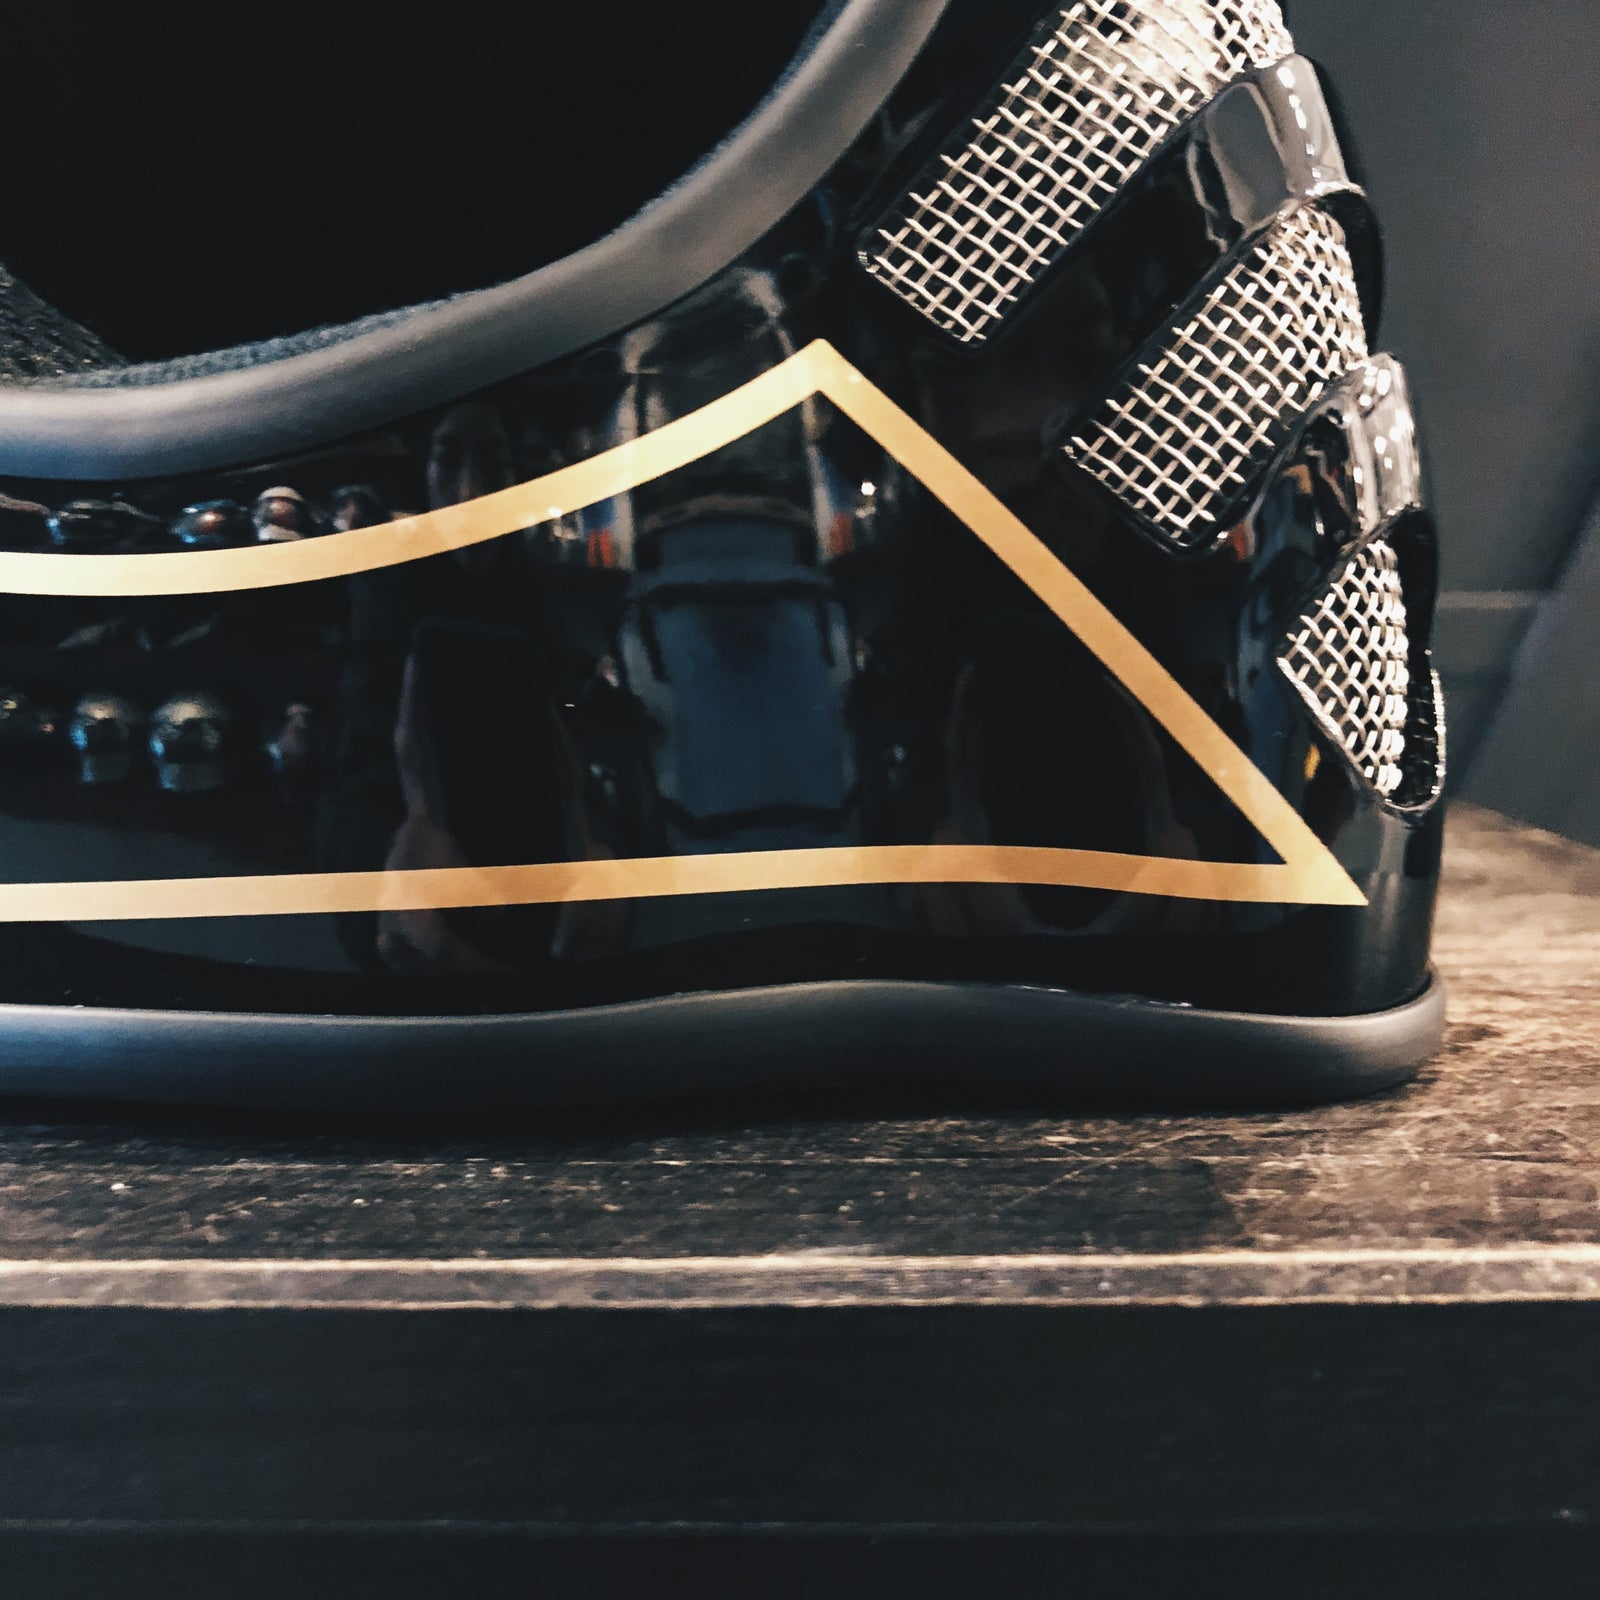 Motorwerks X Recs Helmet, Limited Edition - Black Gold Pinstripes